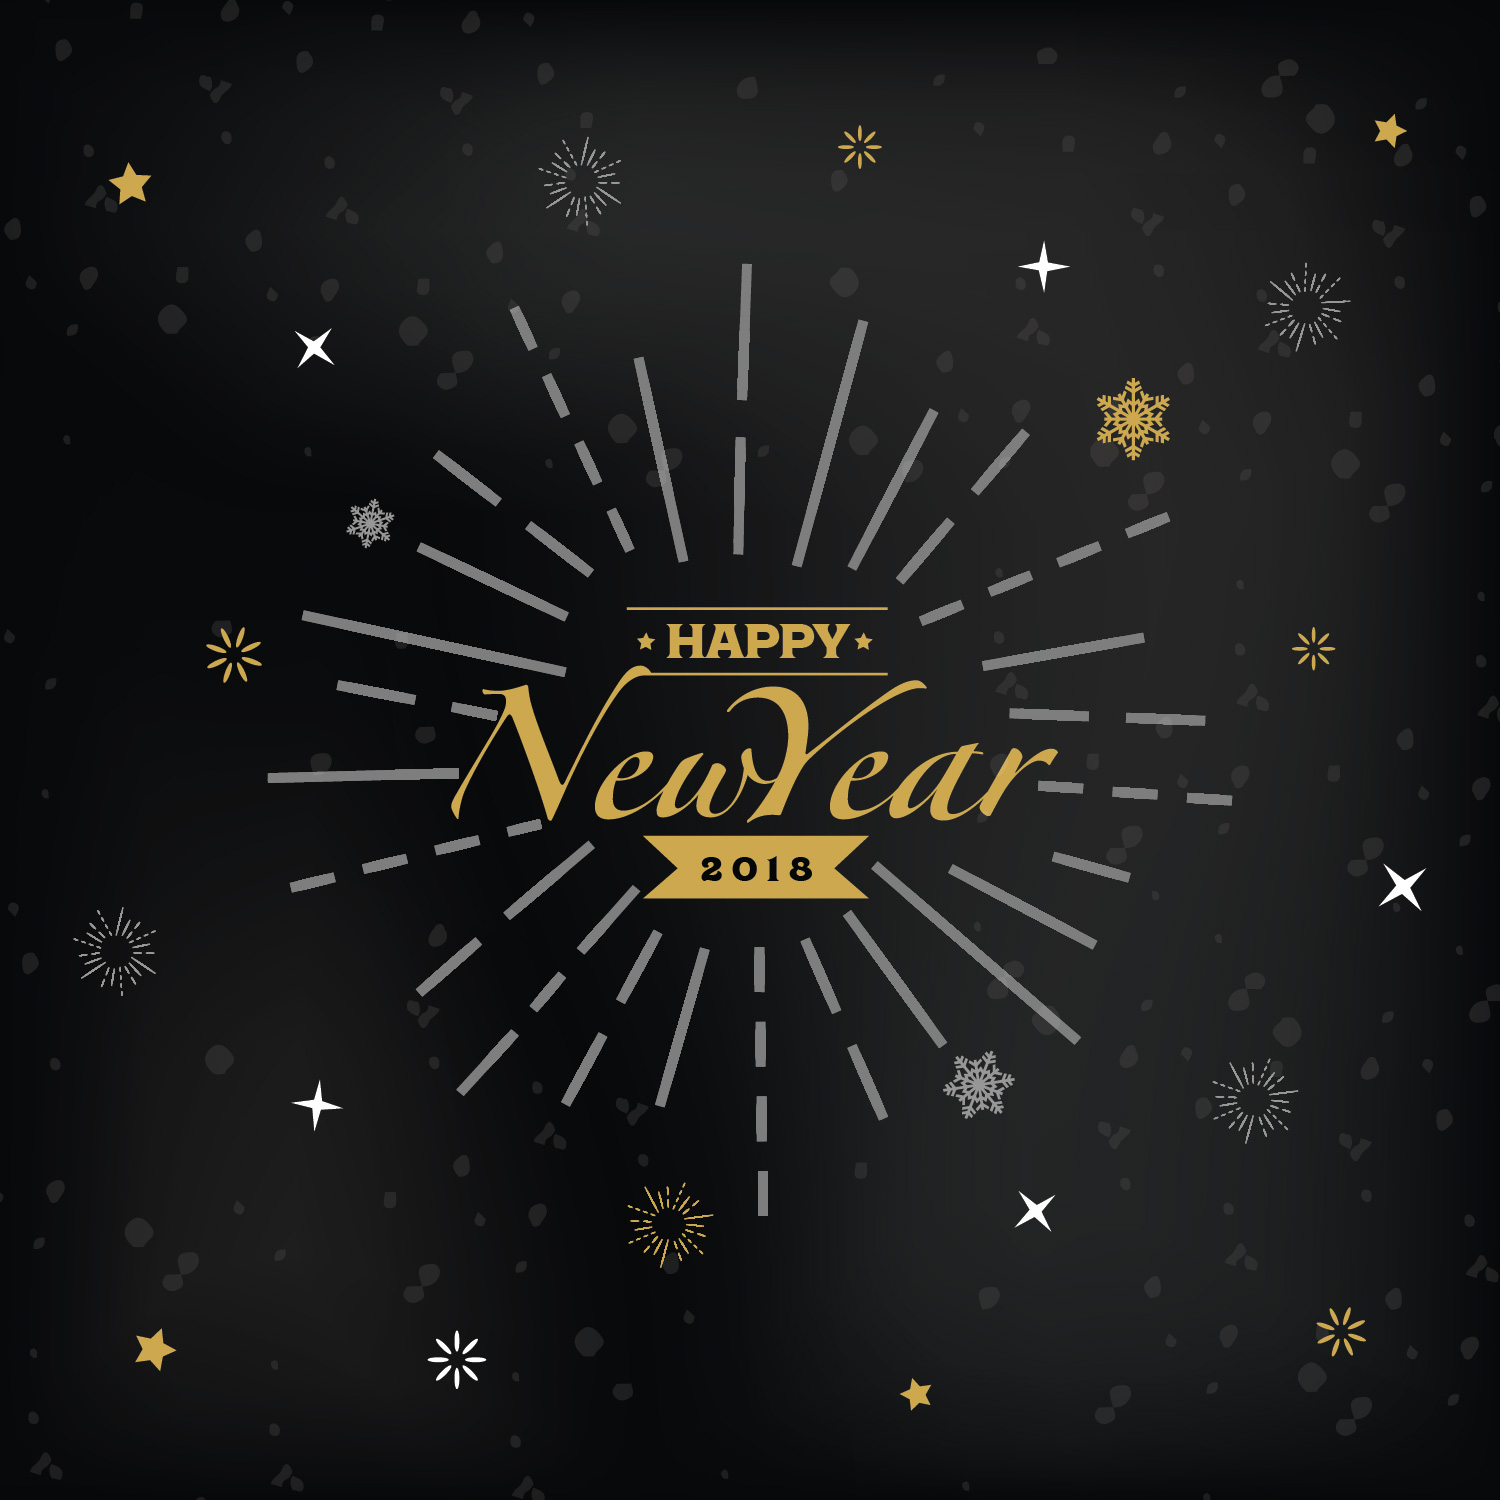 Free New Year Greeting Card Templates-02